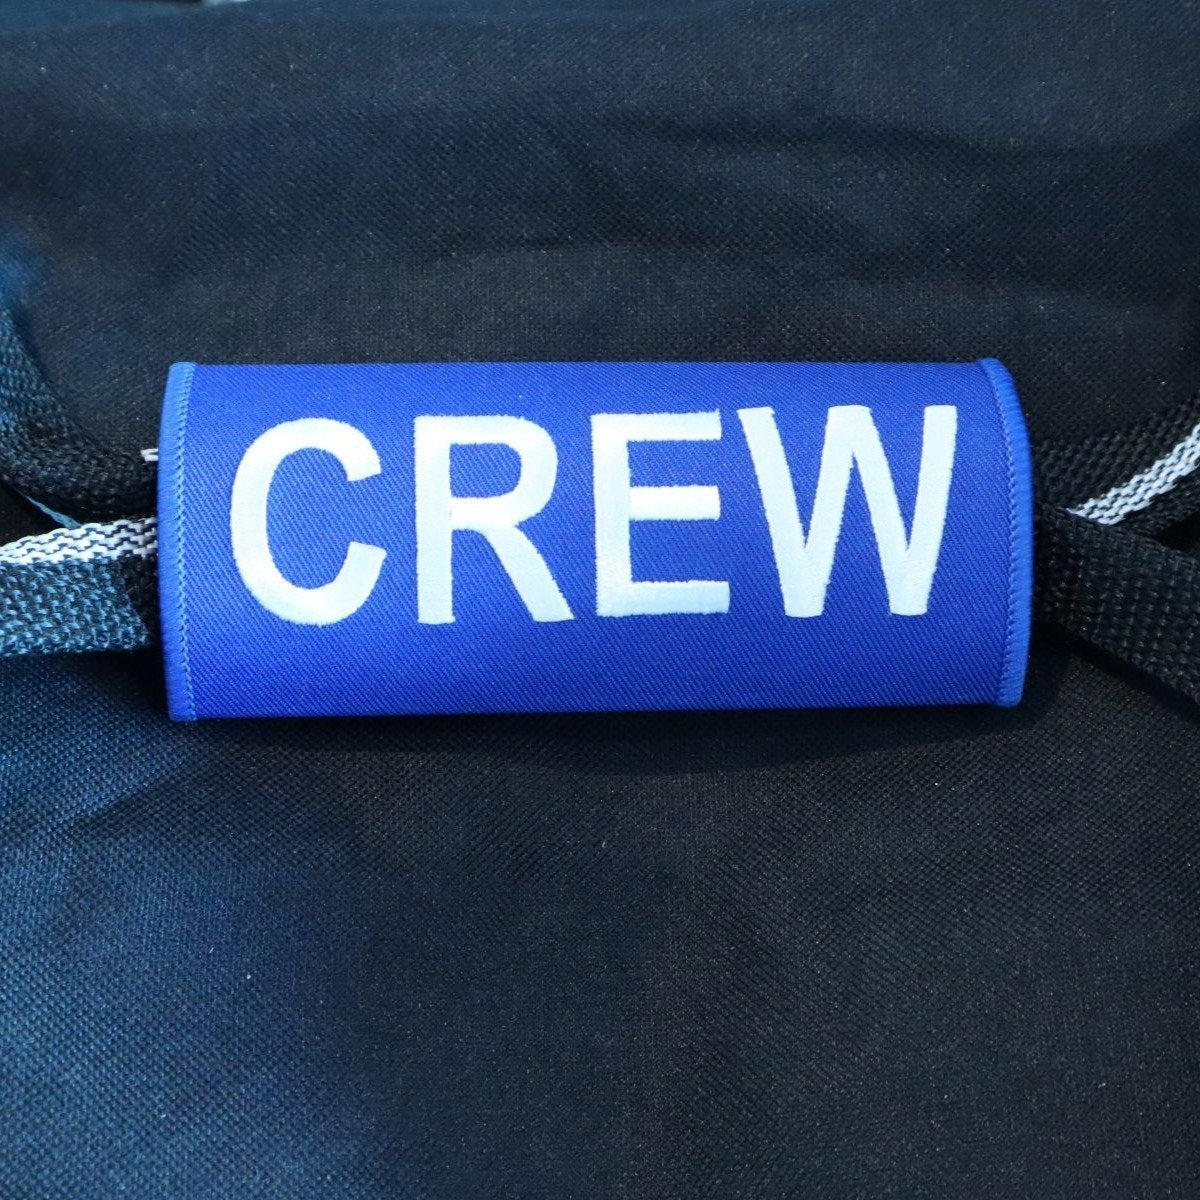 Blue Crew - Bag Handle Wrap